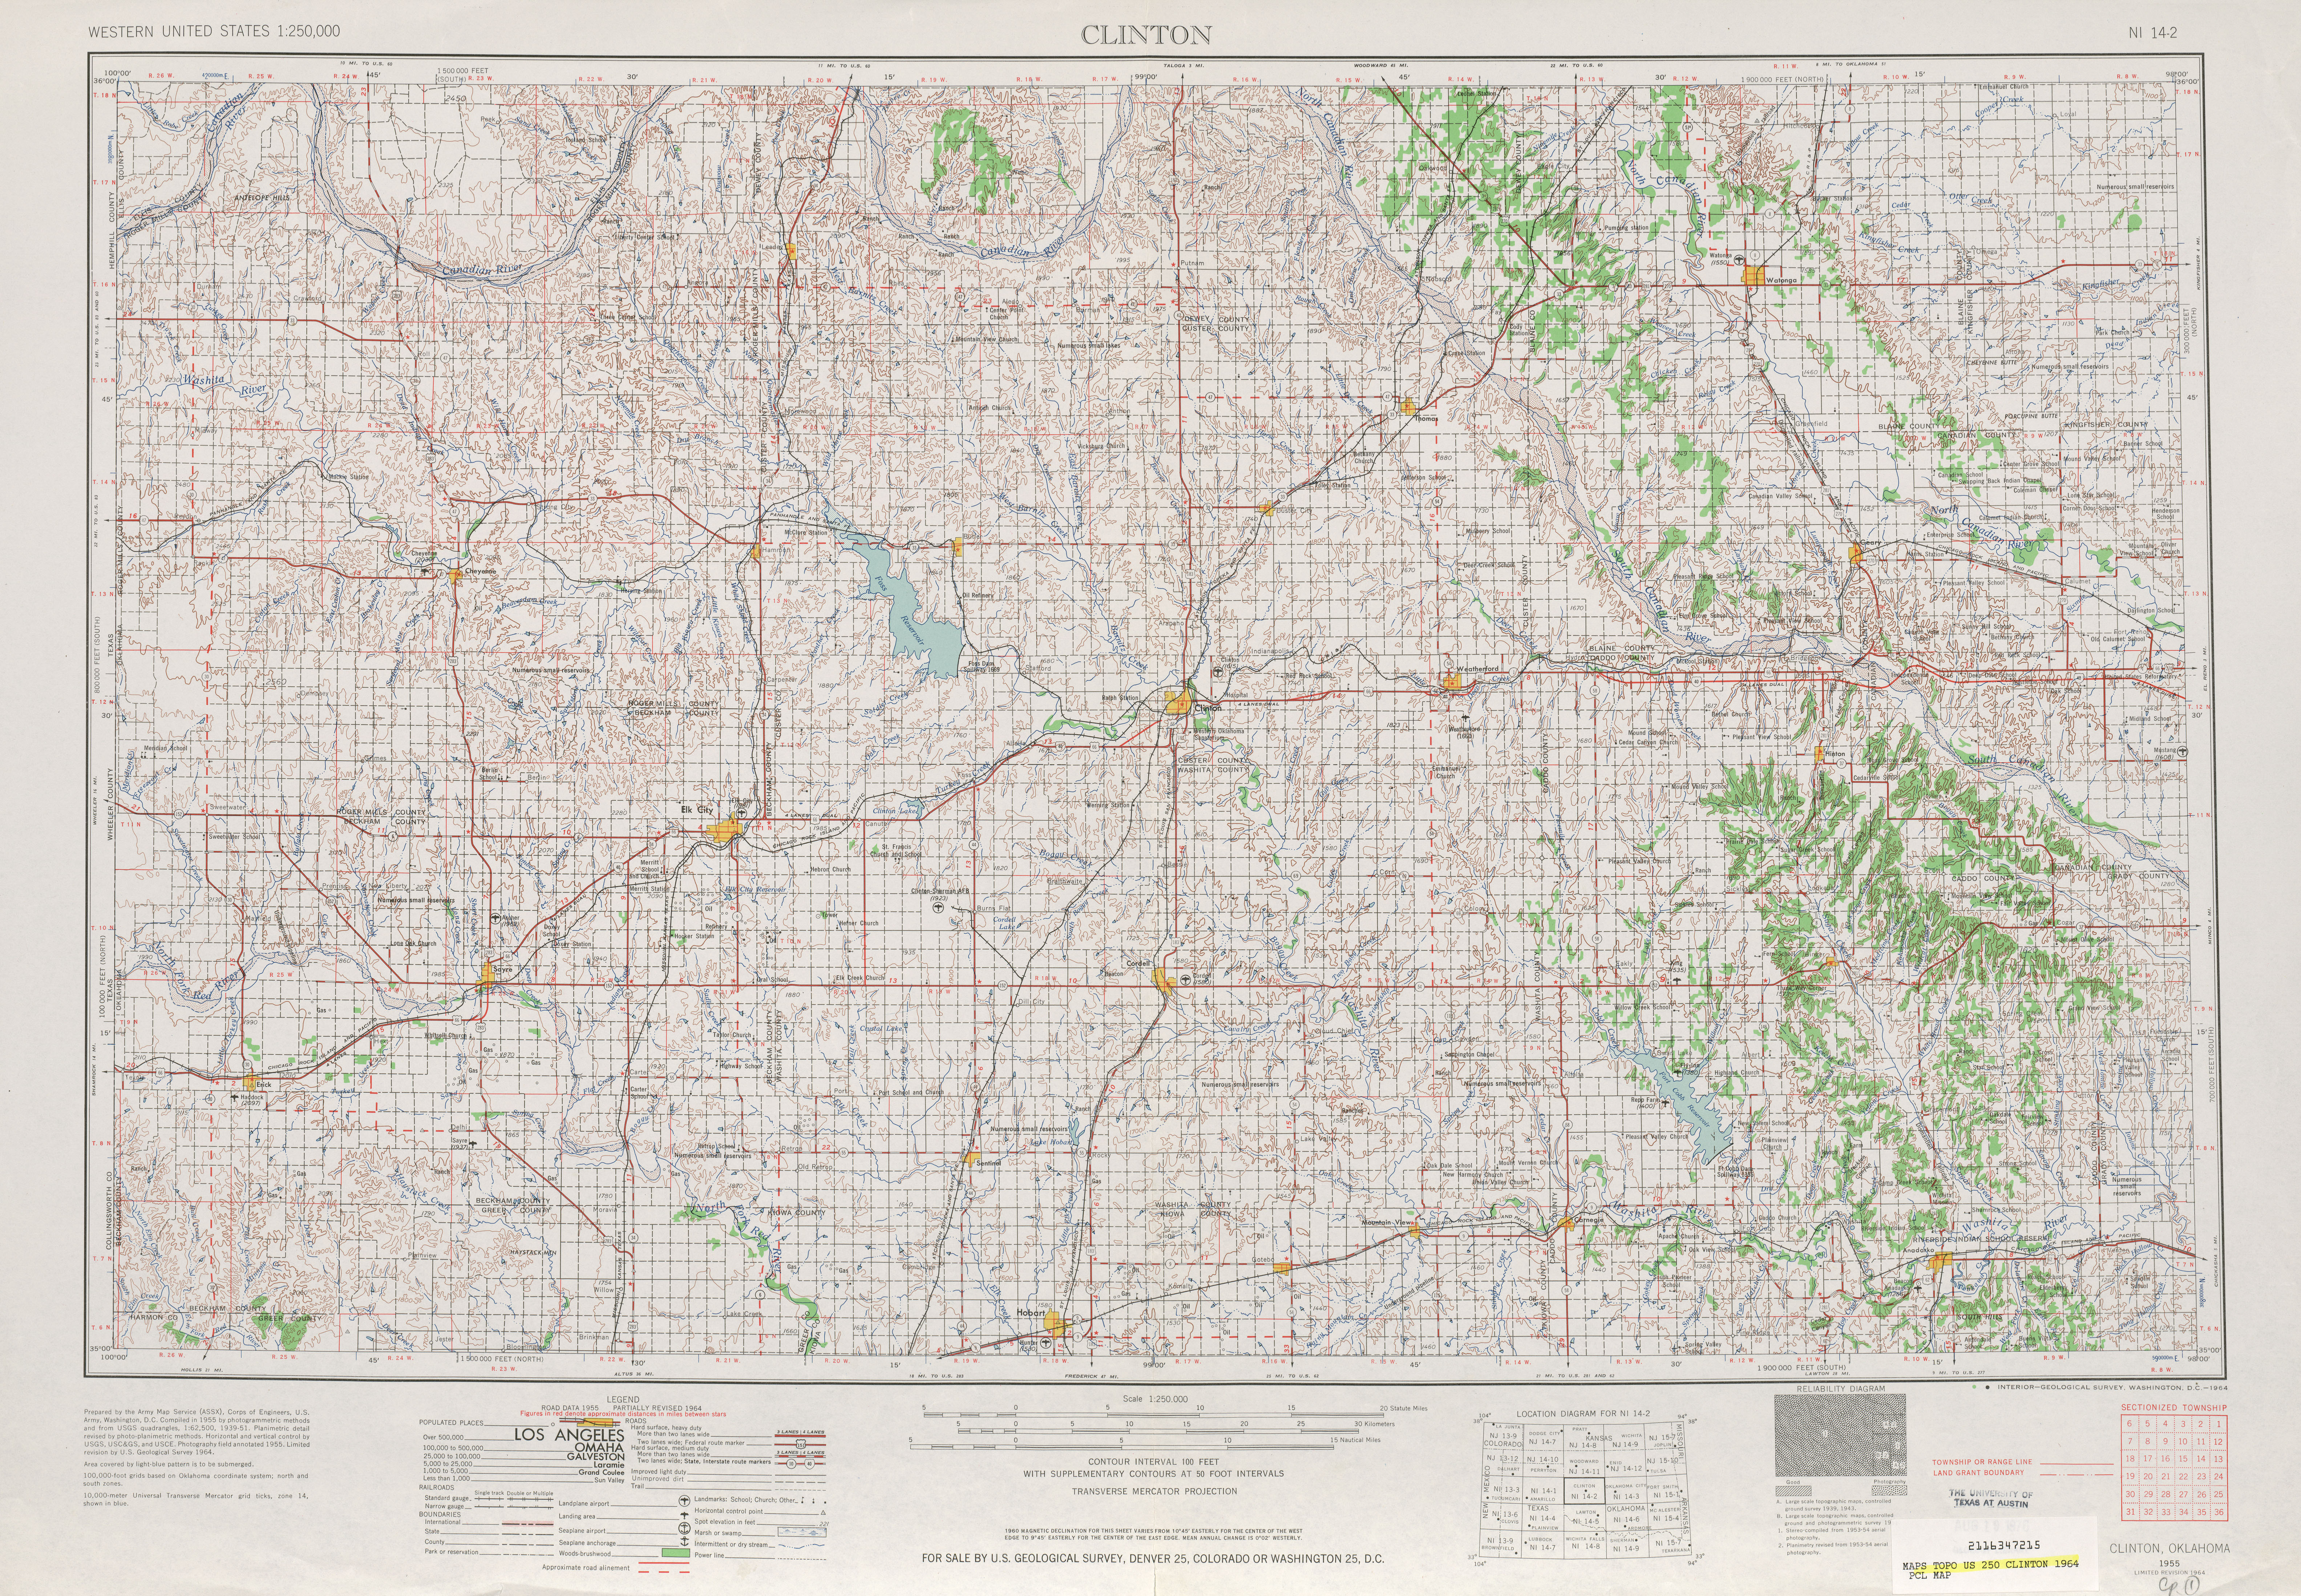 Clinton Topographic Map Sheet, United States 1964